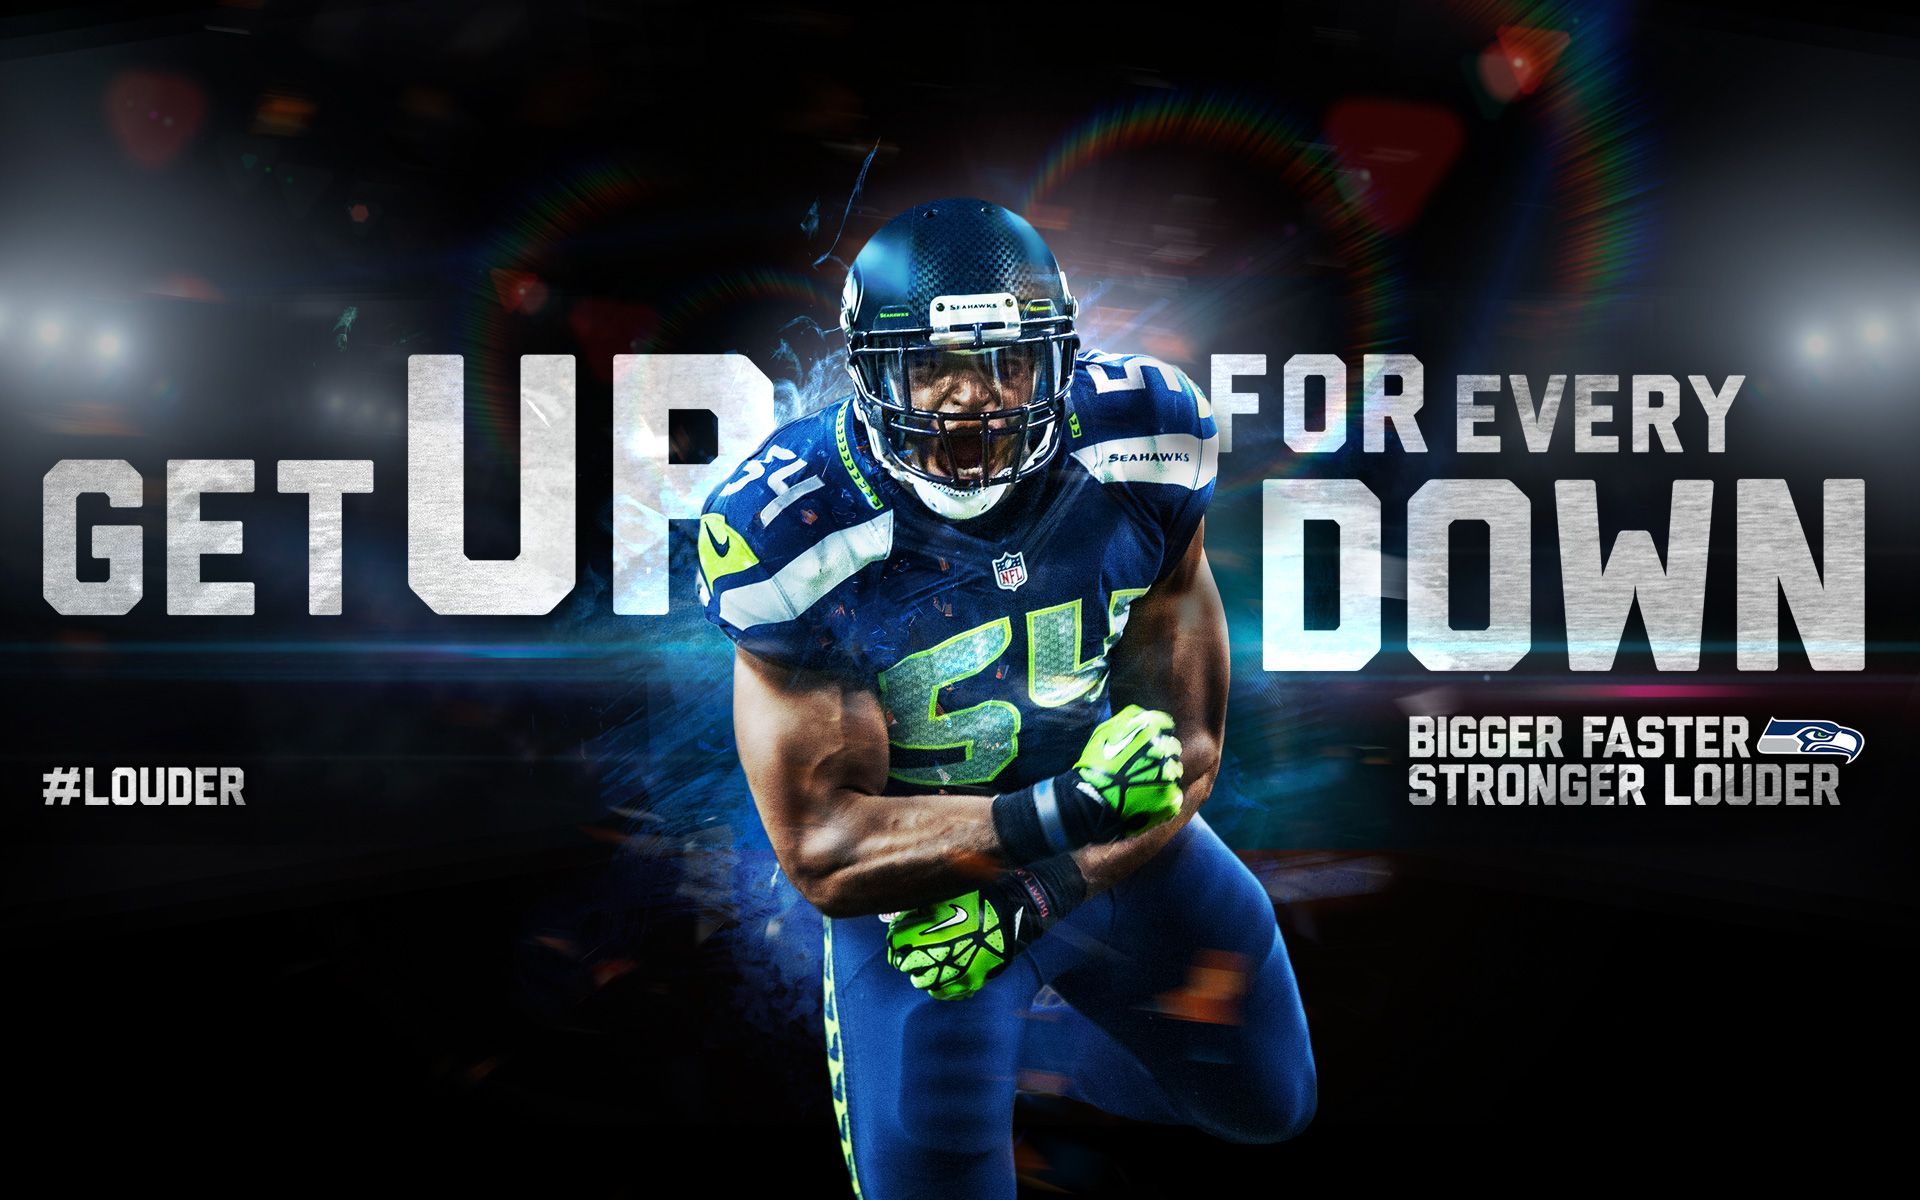 Get Up For Every Down LOUDER Nfl football wallpaper